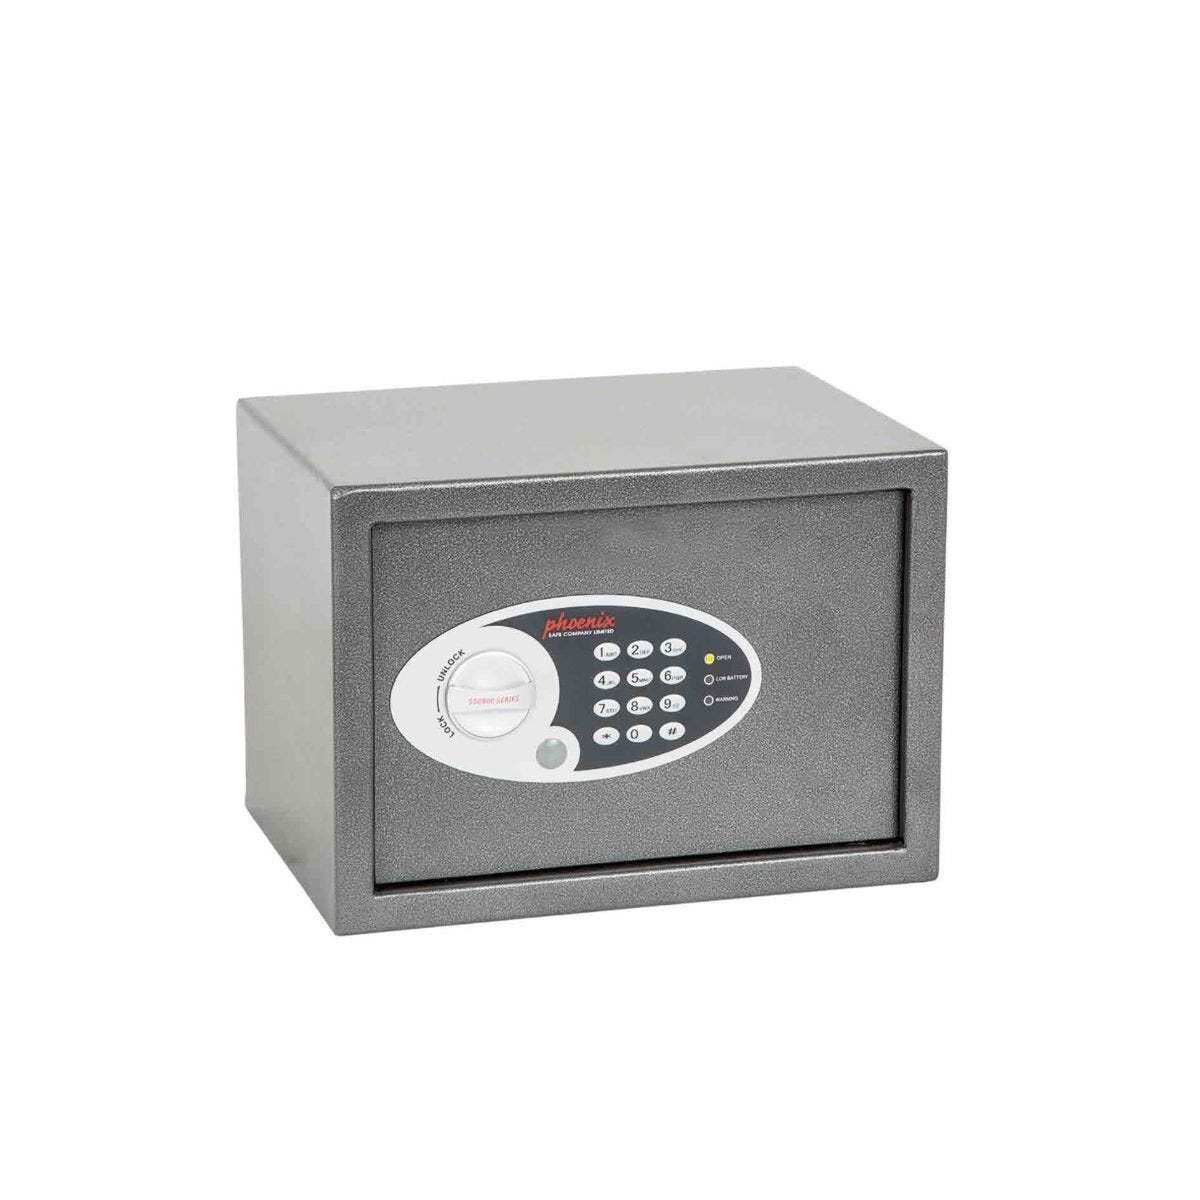 Phoenix Vela Home and Office Security Safe with Electronic Lock Size 2